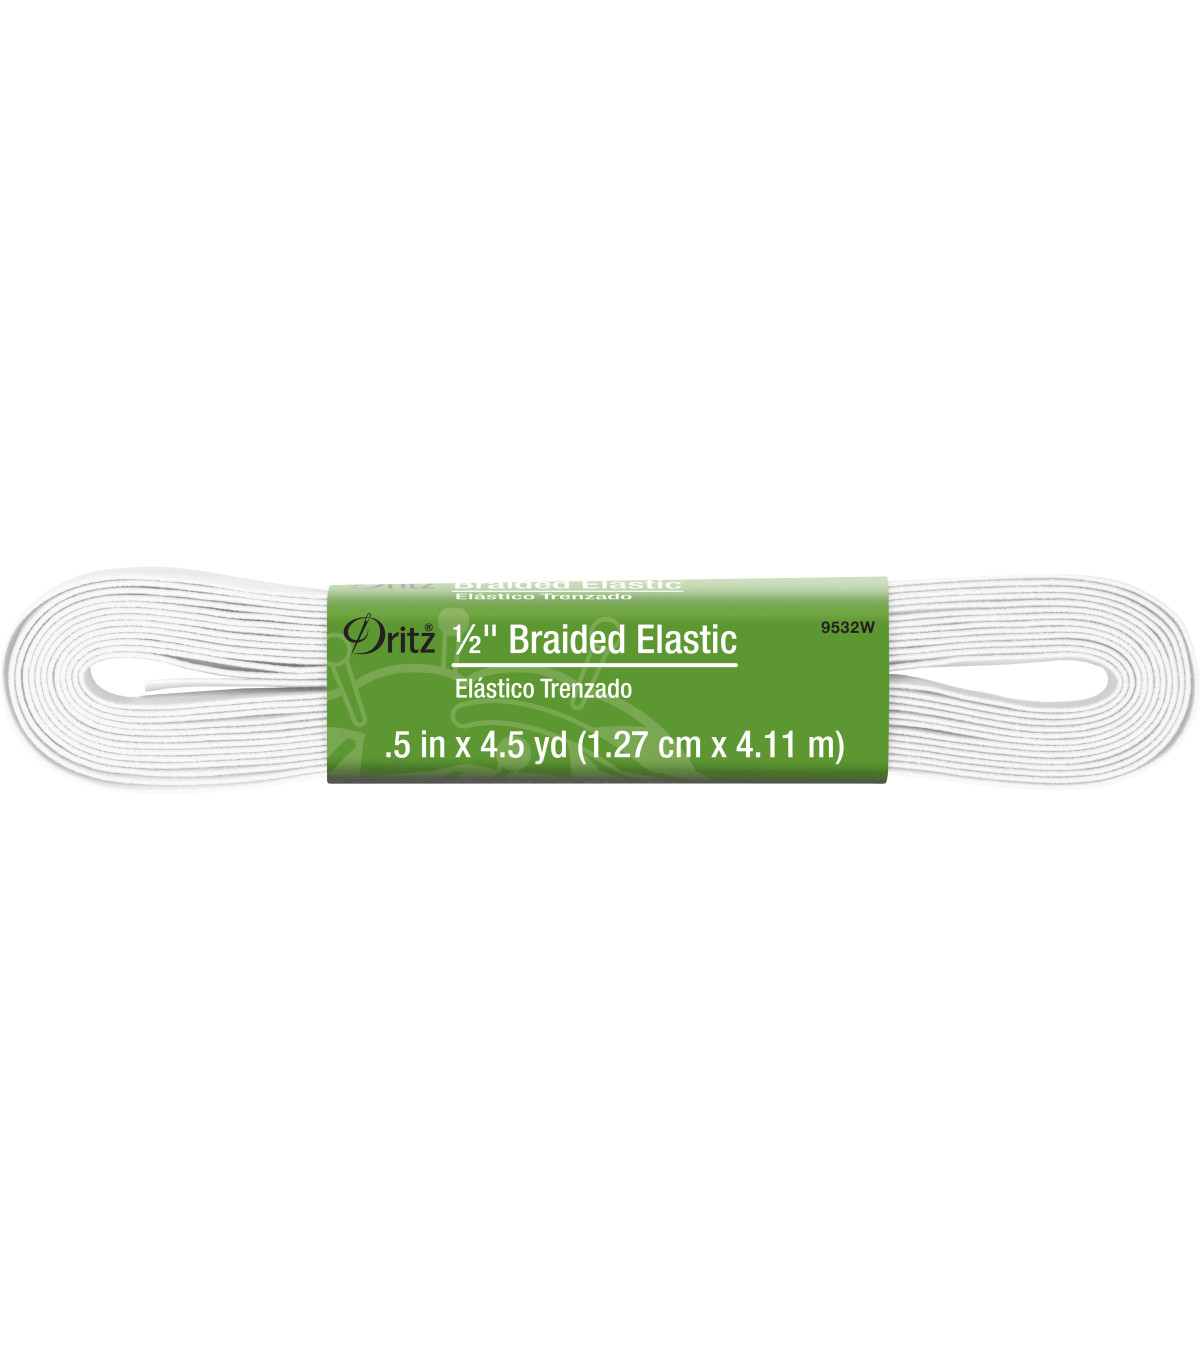 "Dritz 1/2"" Braided Elastic 4.5Yds White"